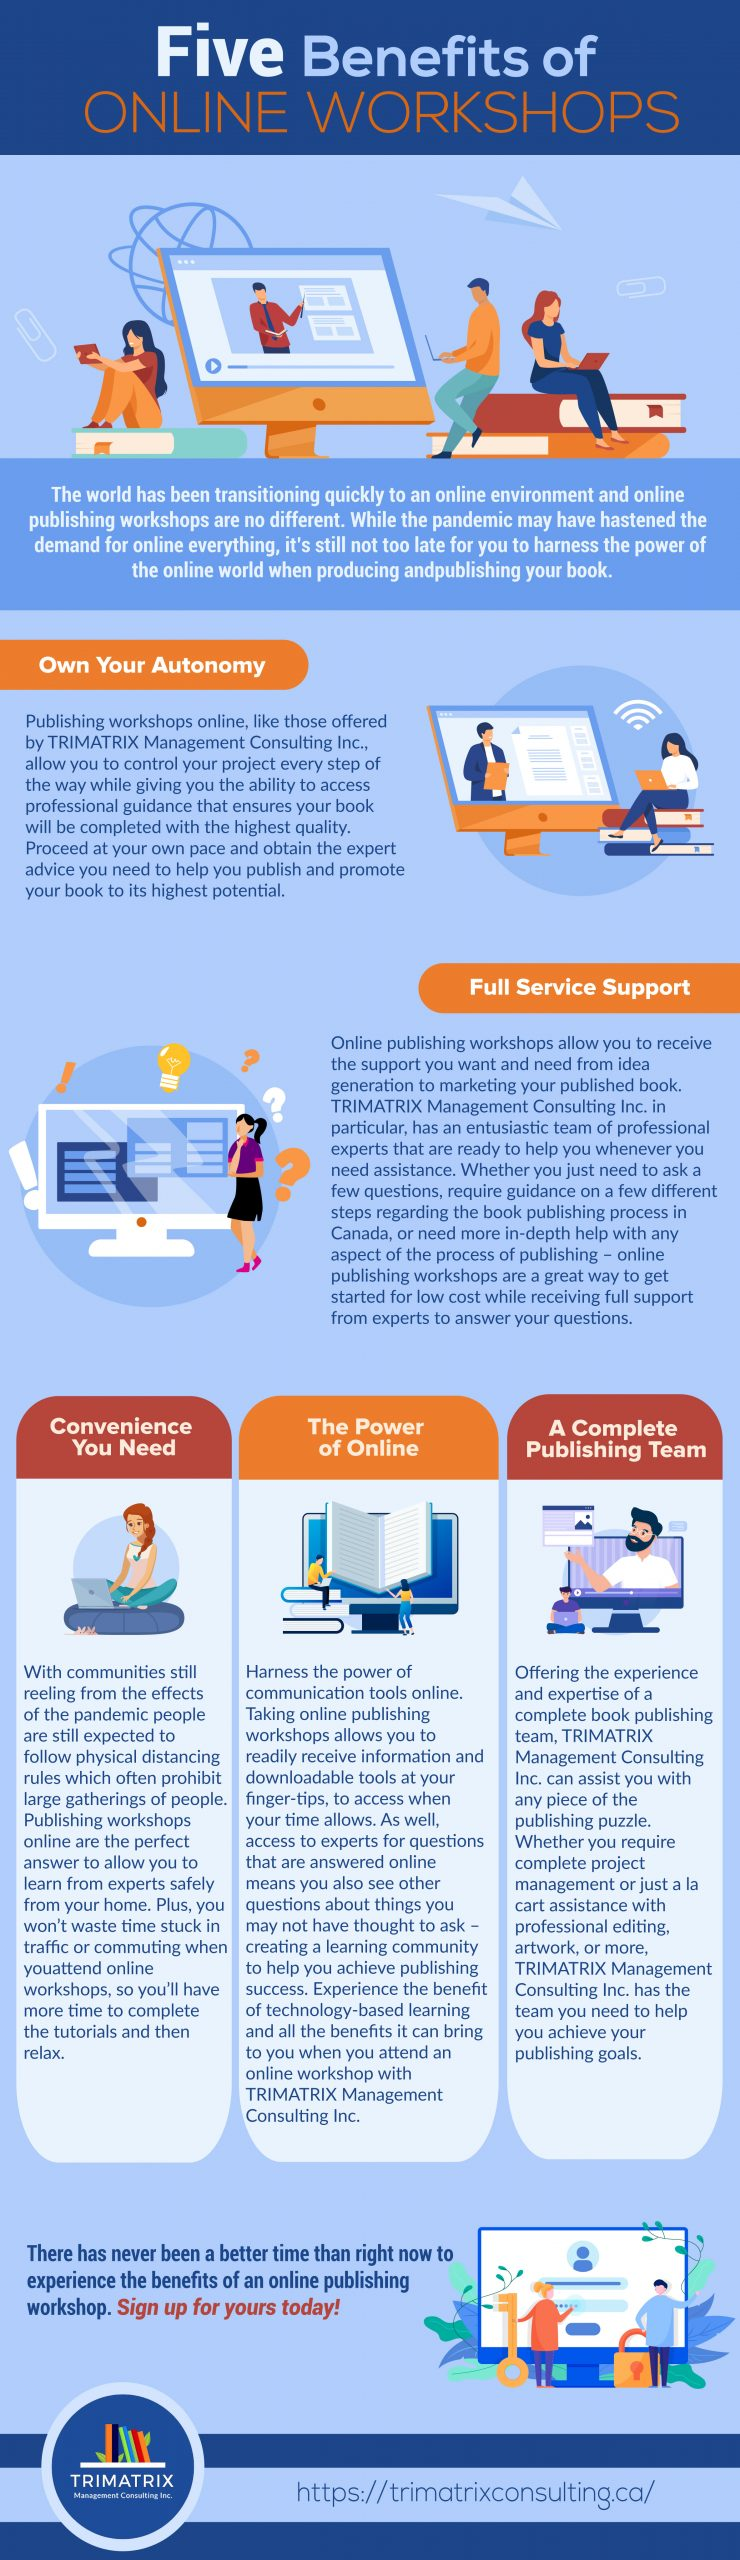 Infographic showing 5 benefits of online workshops